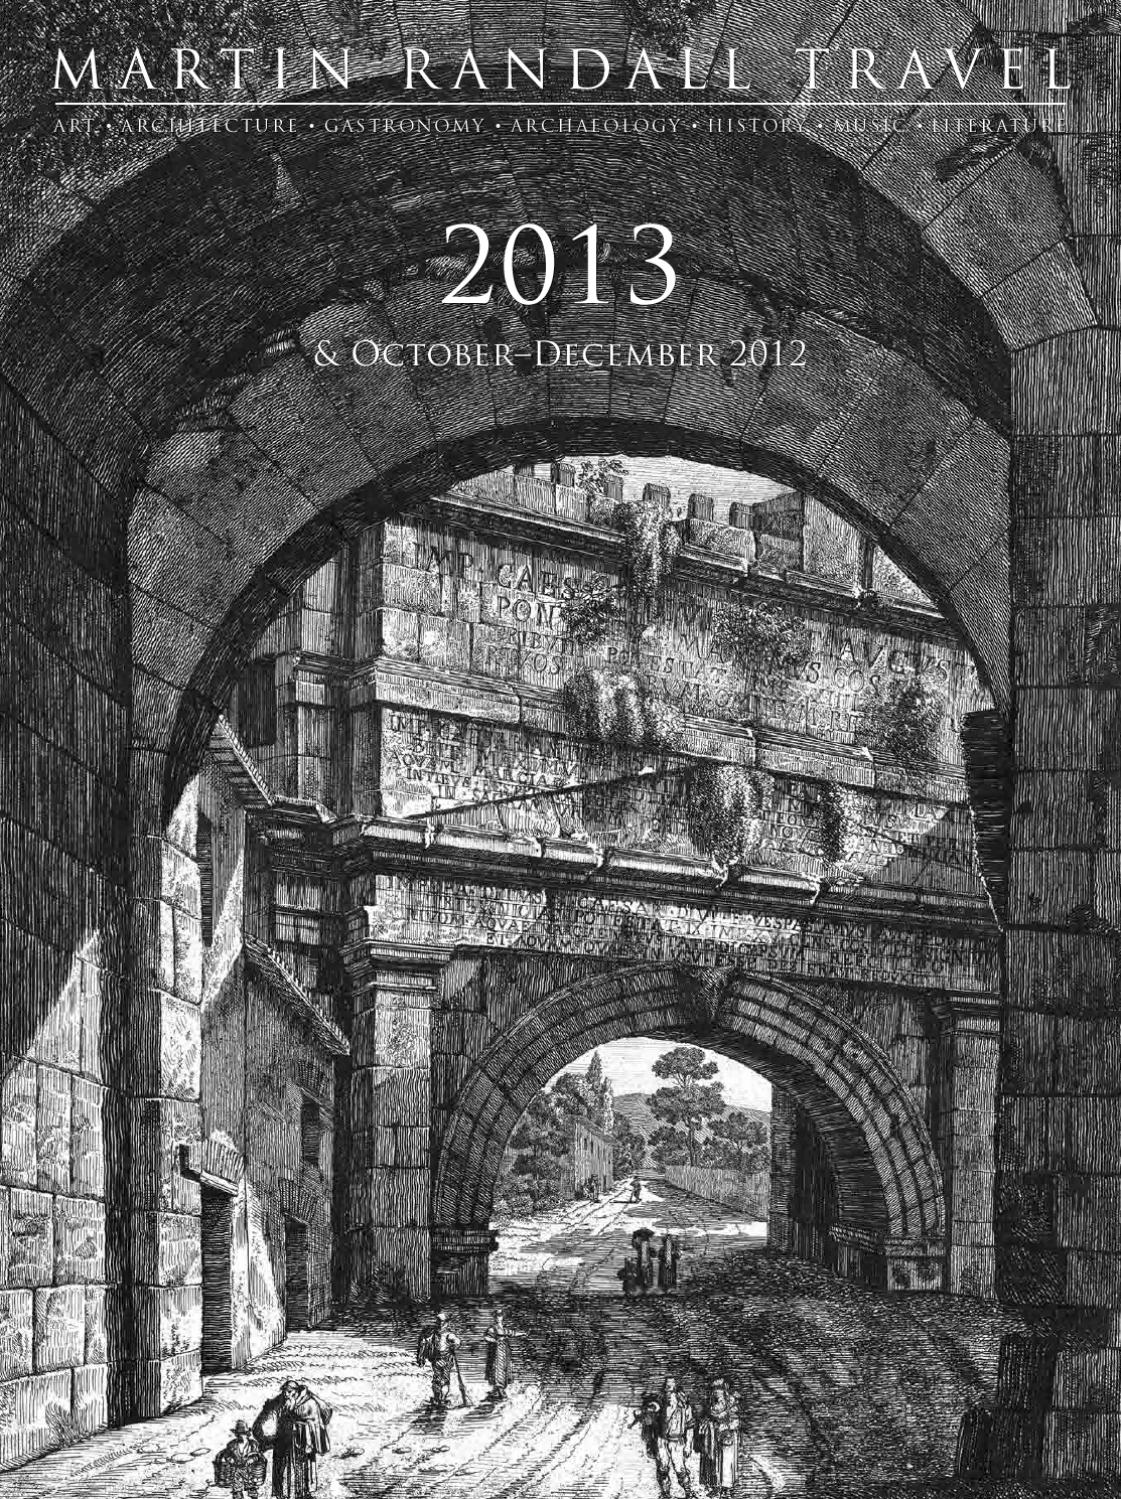 Martin Randall Travel 2012 13 Brochure By Issuu Wilton 1145 Parts List And Diagram Before 1999 Ereplacementparts